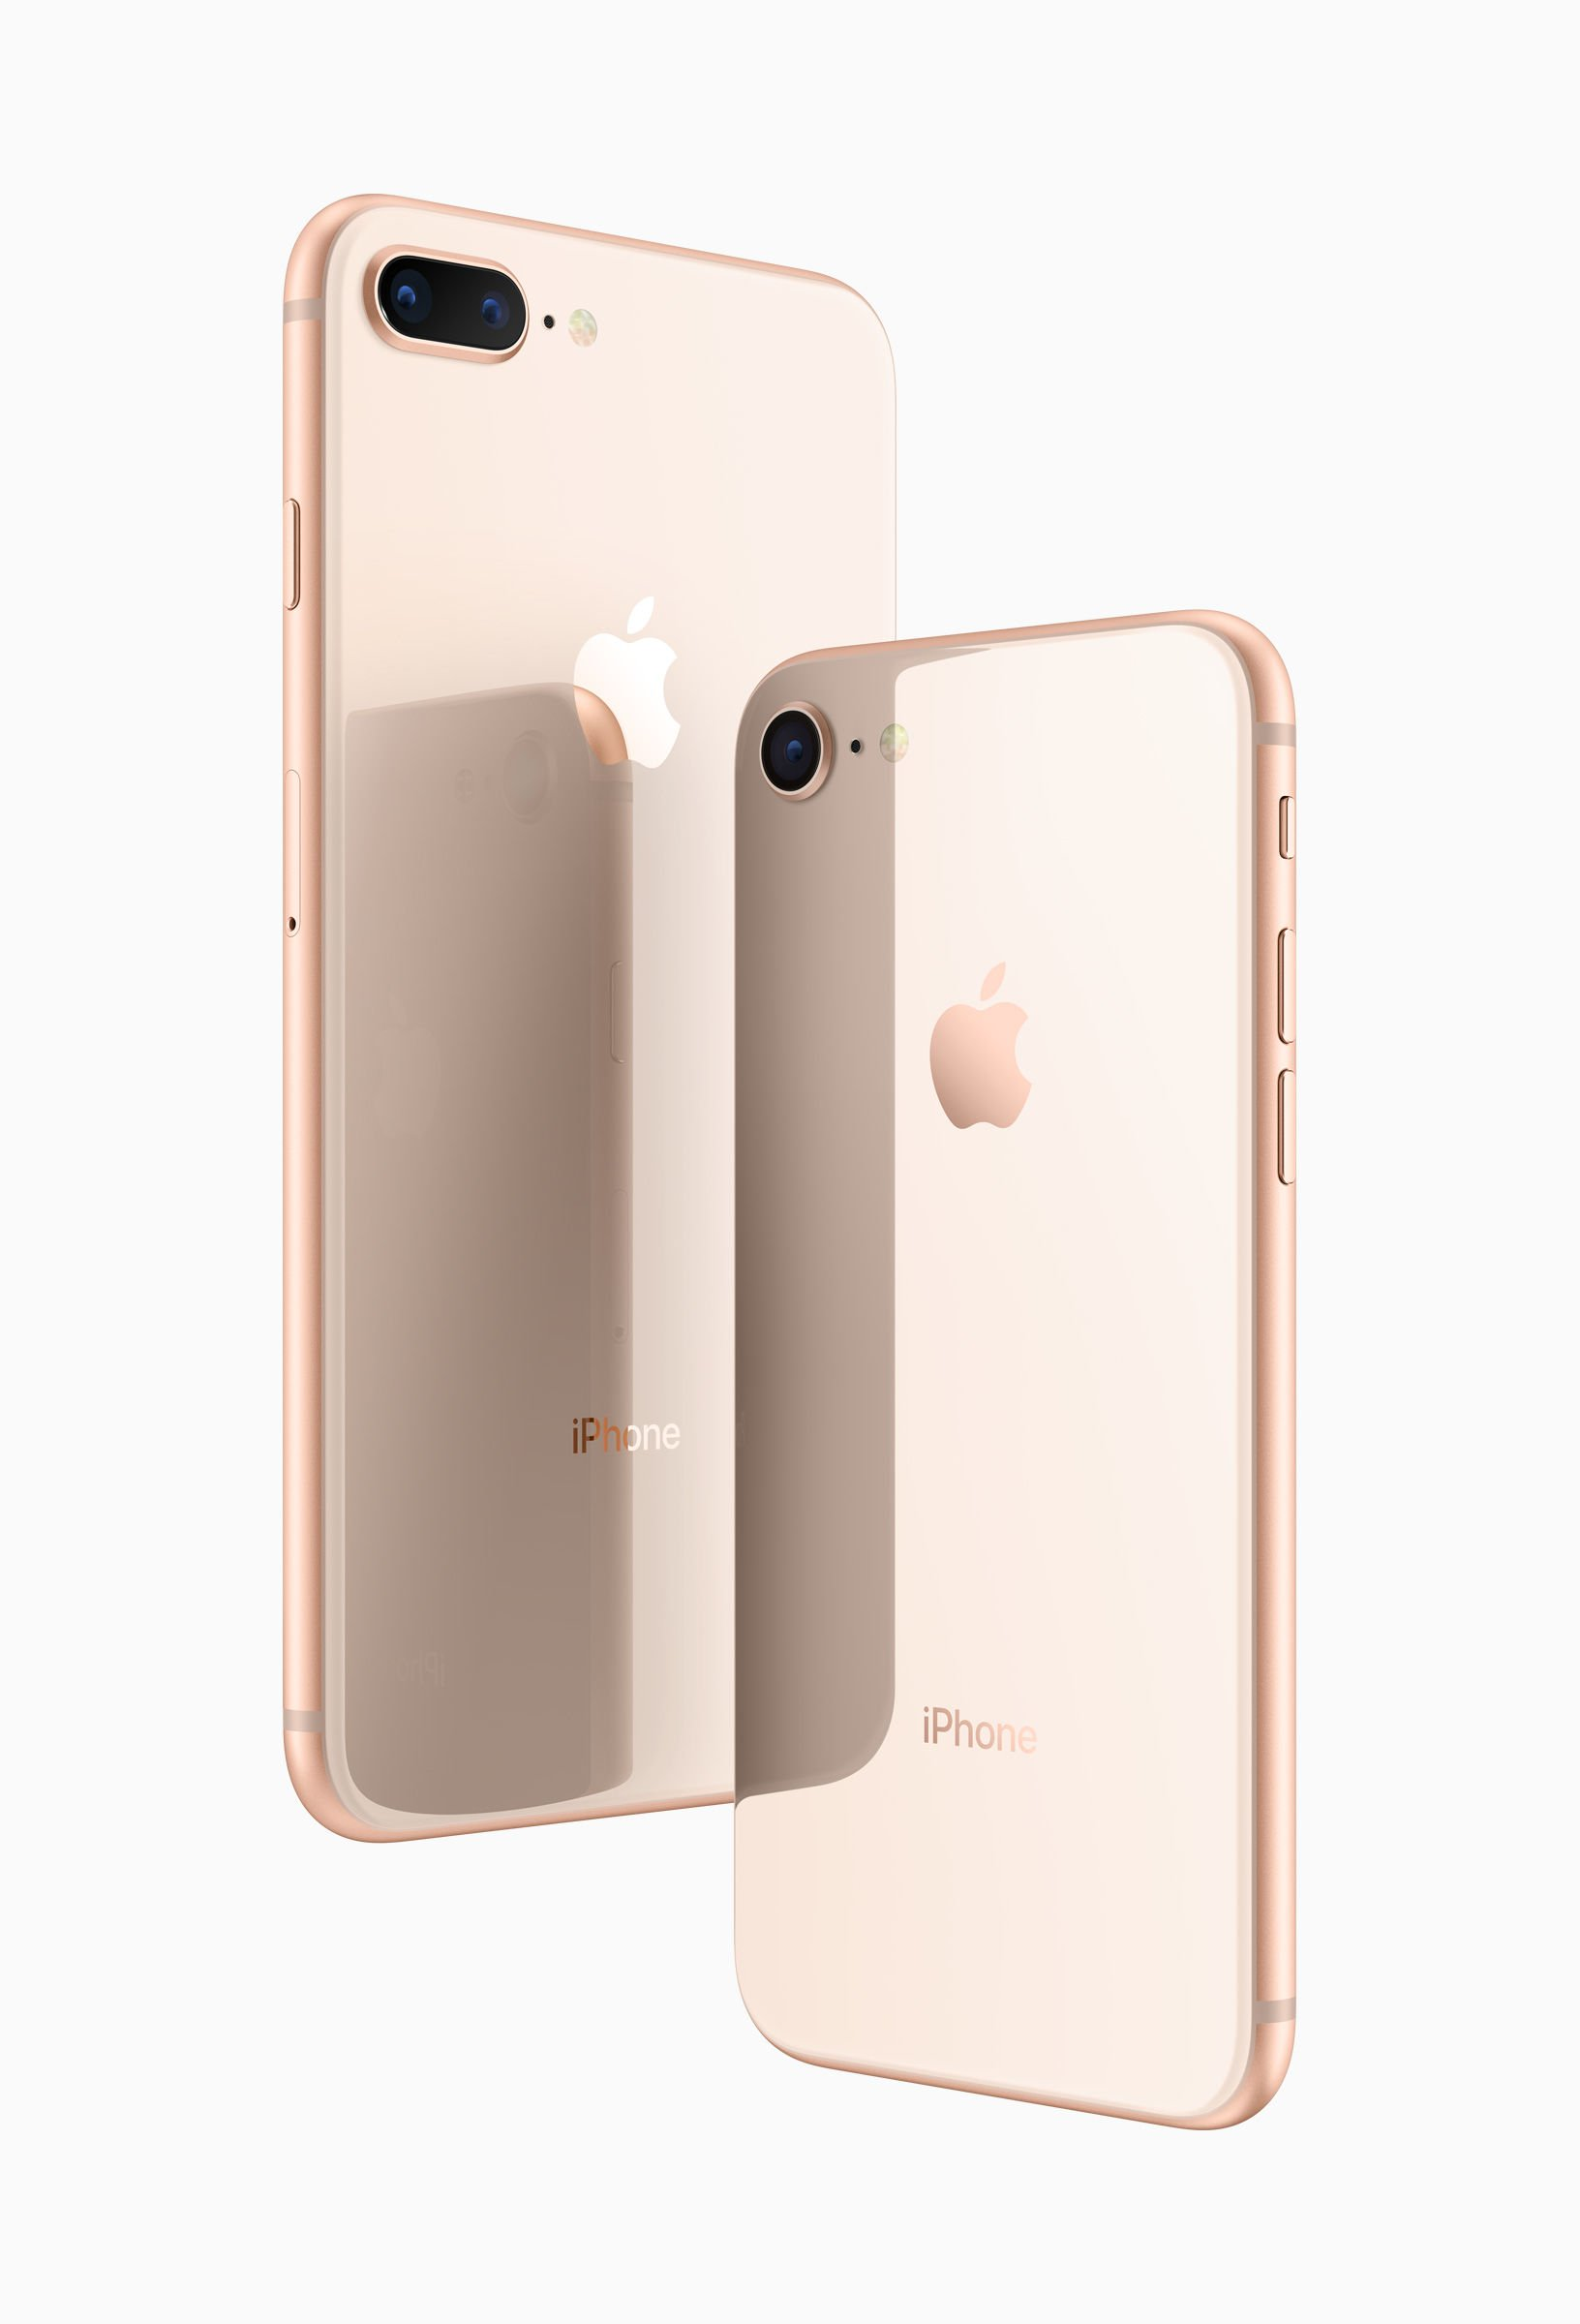 iPhone 8 News: Apple launches Red iPhone 8 | Tech News 7